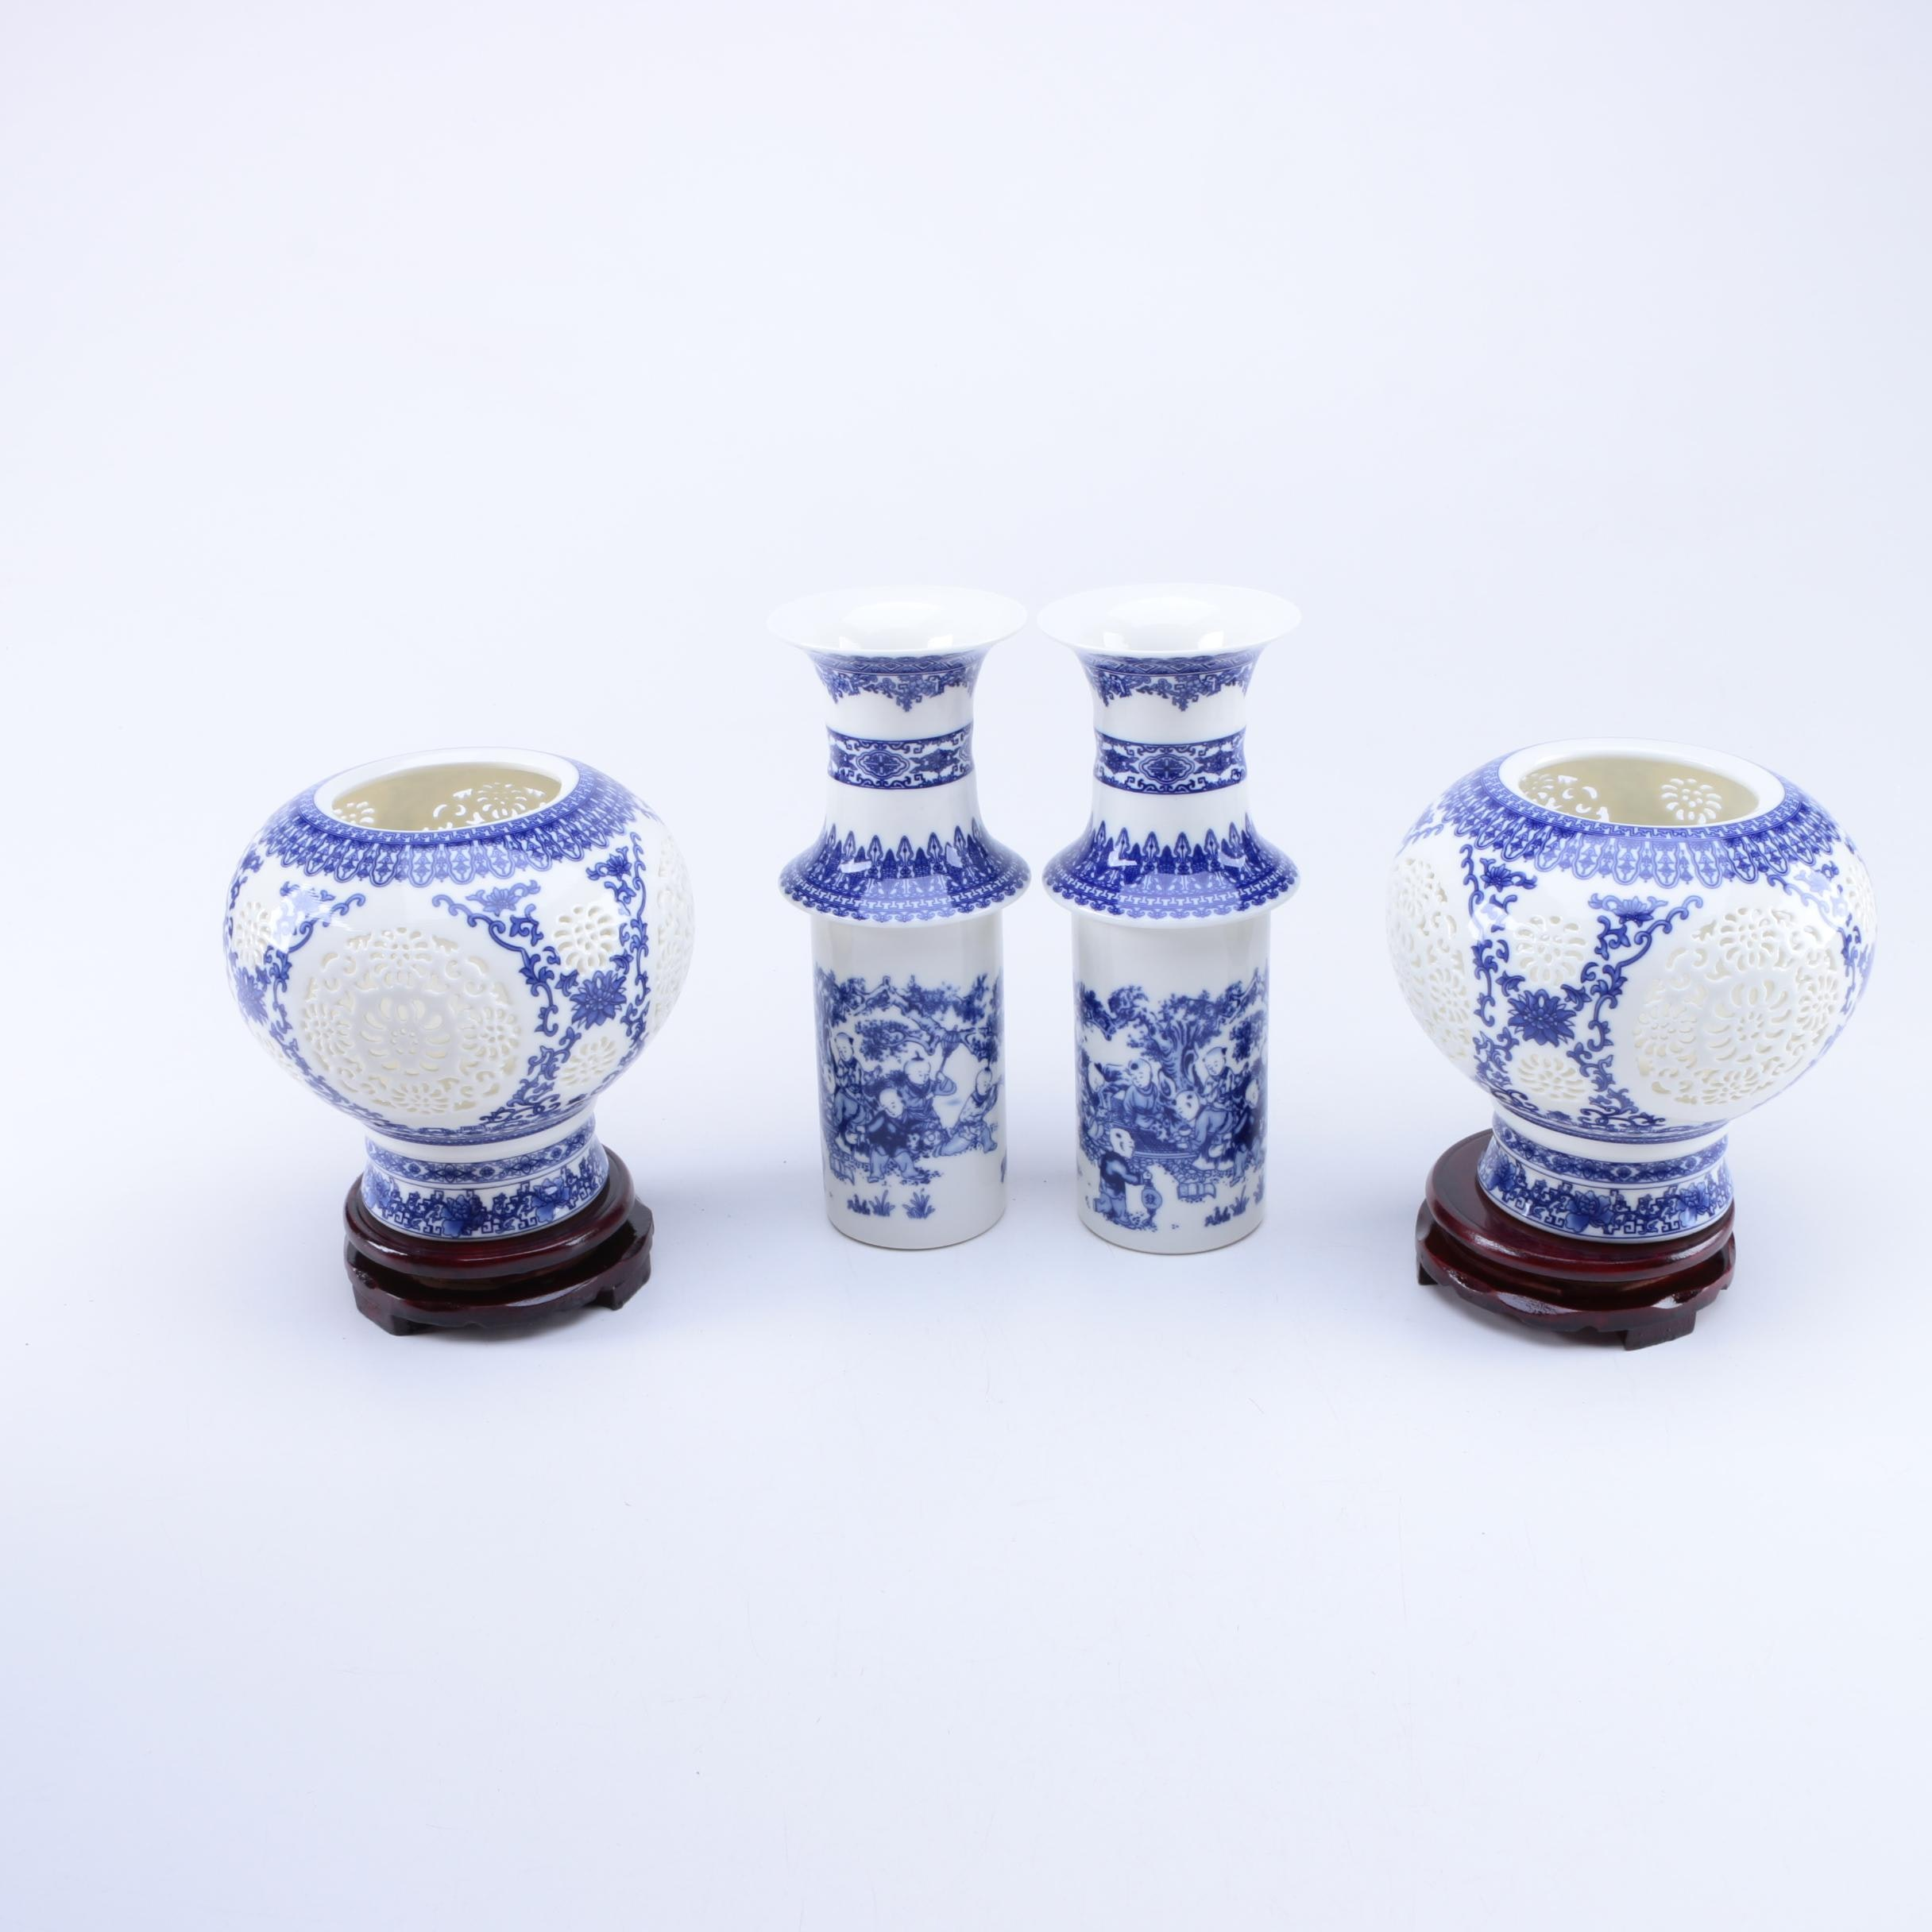 Chinese Blue and White Porcelain Vase Collection